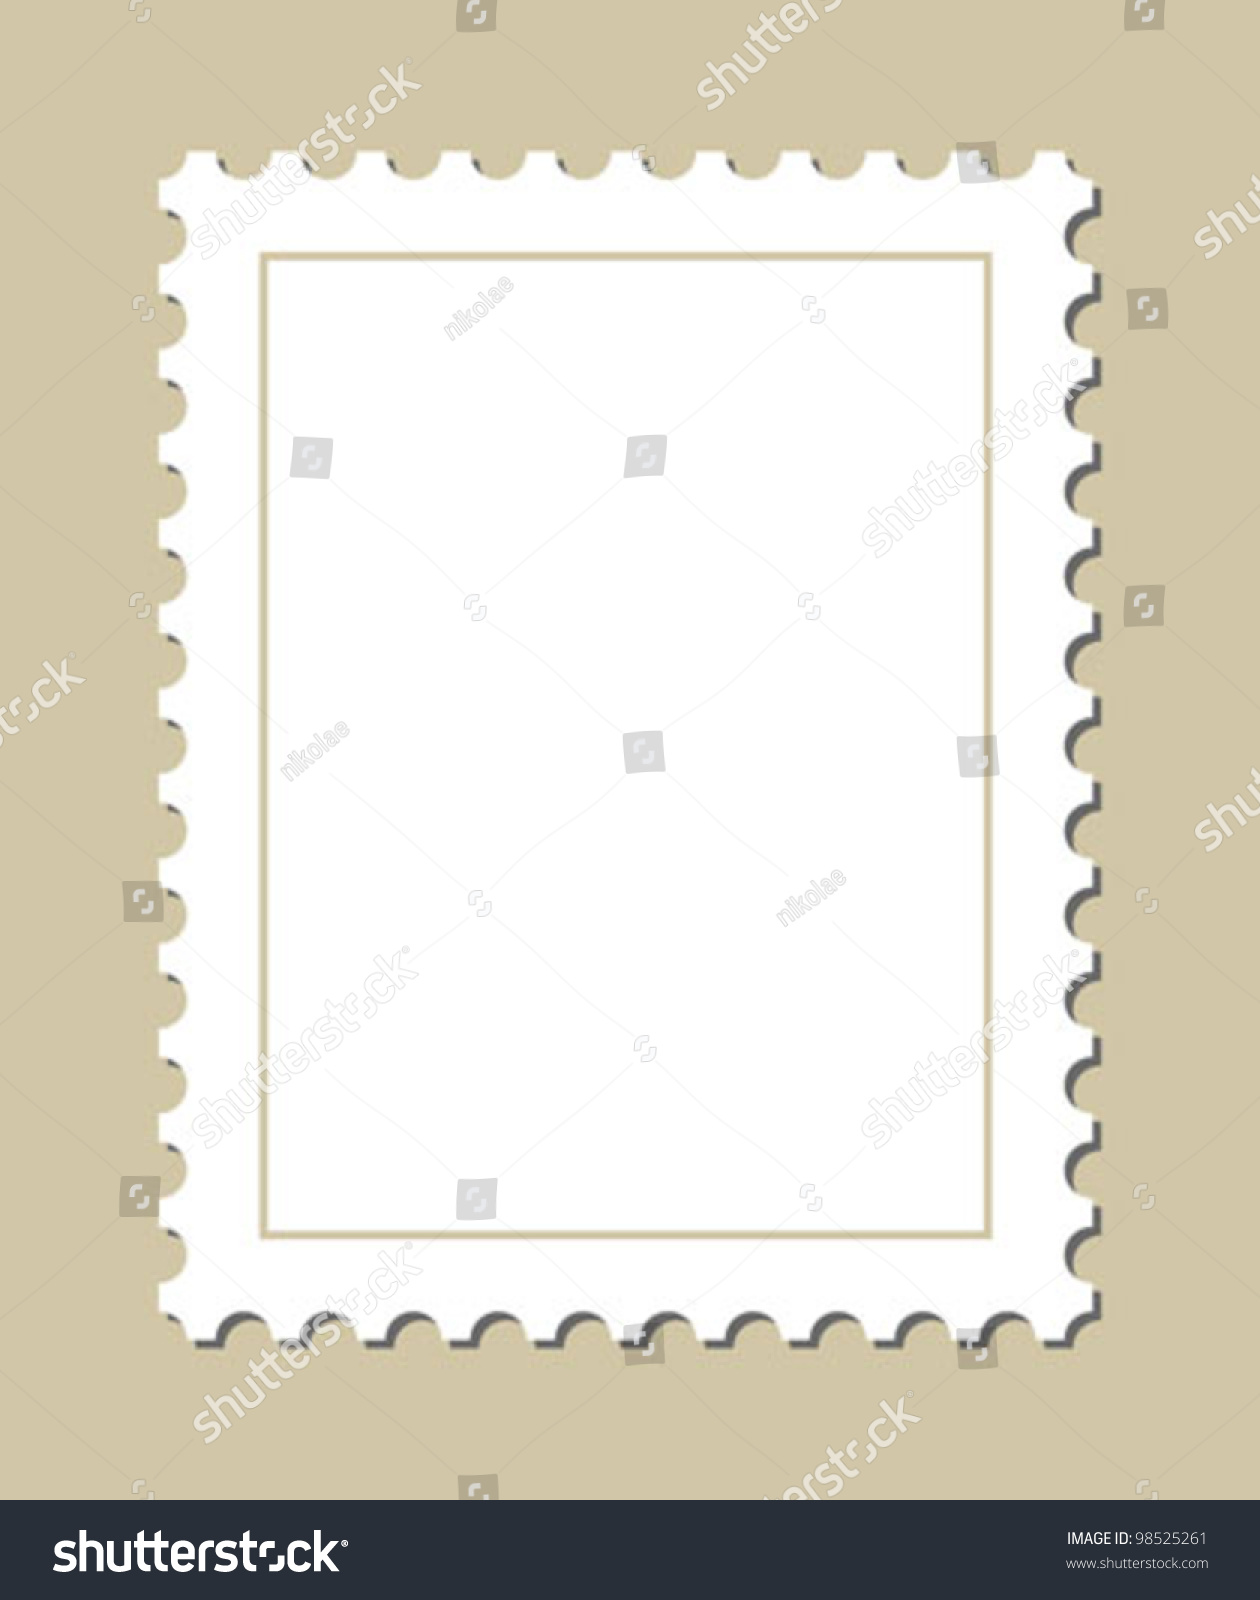 blank stamp template stock vector royalty free 98525261 shutterstock